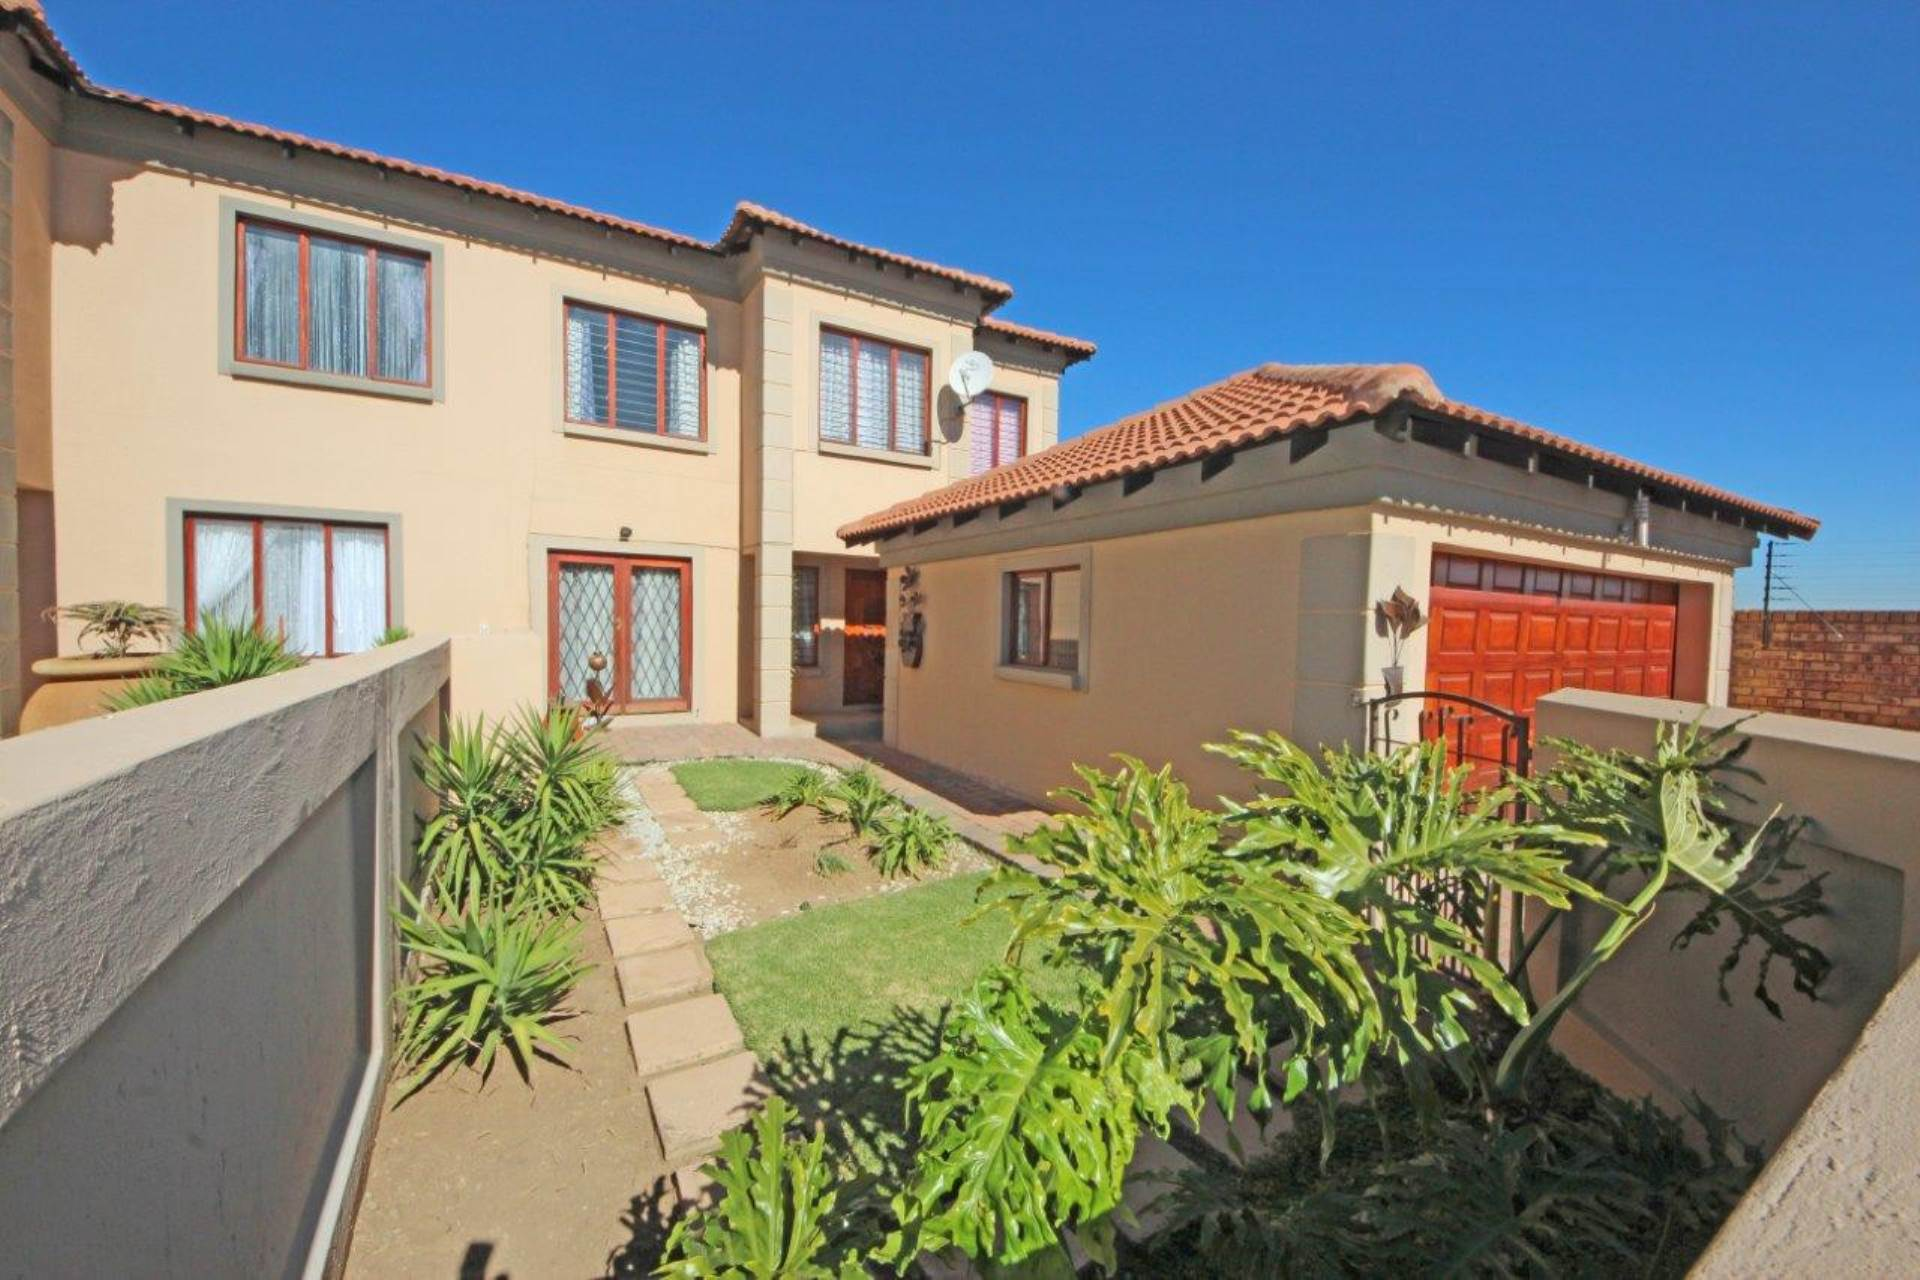 3 BedroomTownhouse To Rent In Sonneveld